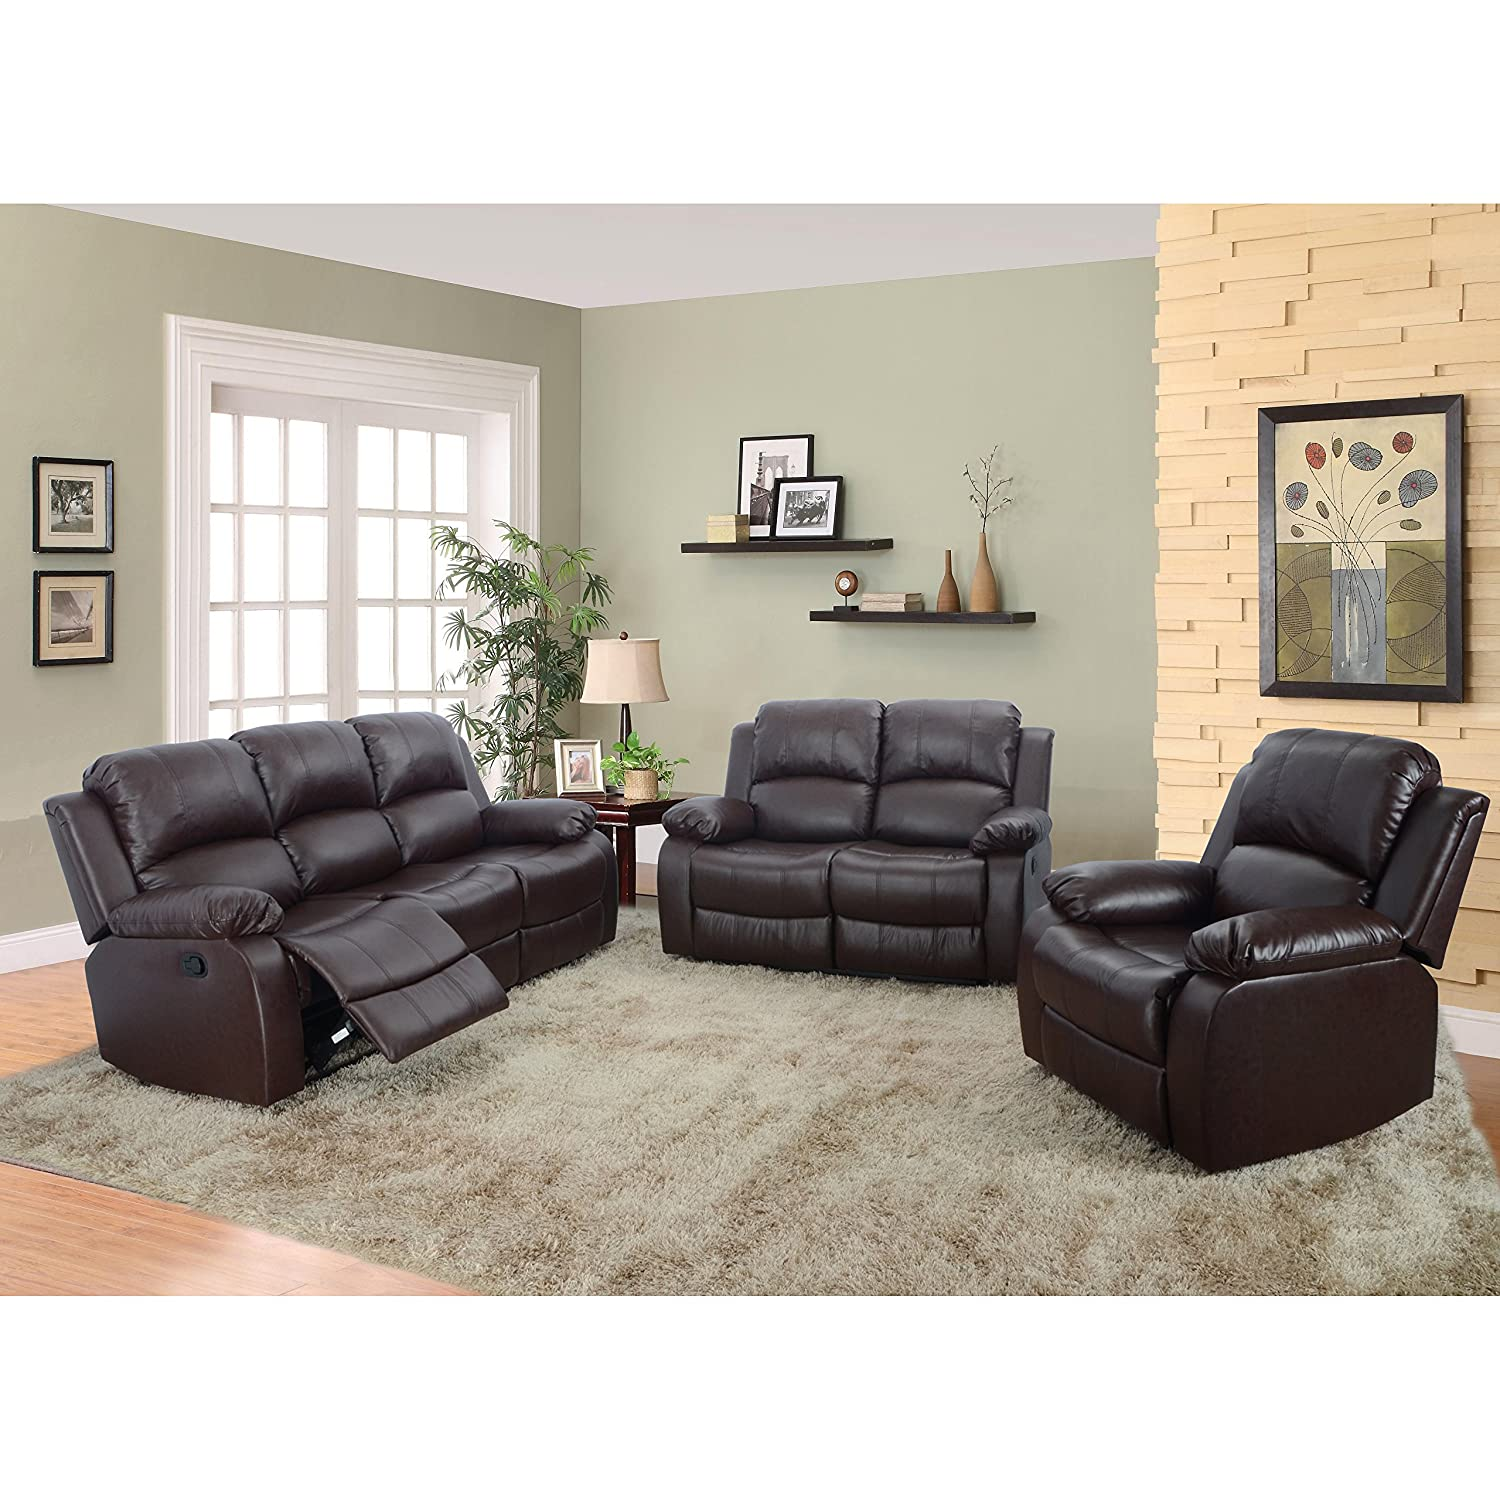 Amazon.com: Beverly Muebles 3 pieza sofá & Loveseat & Silla ...